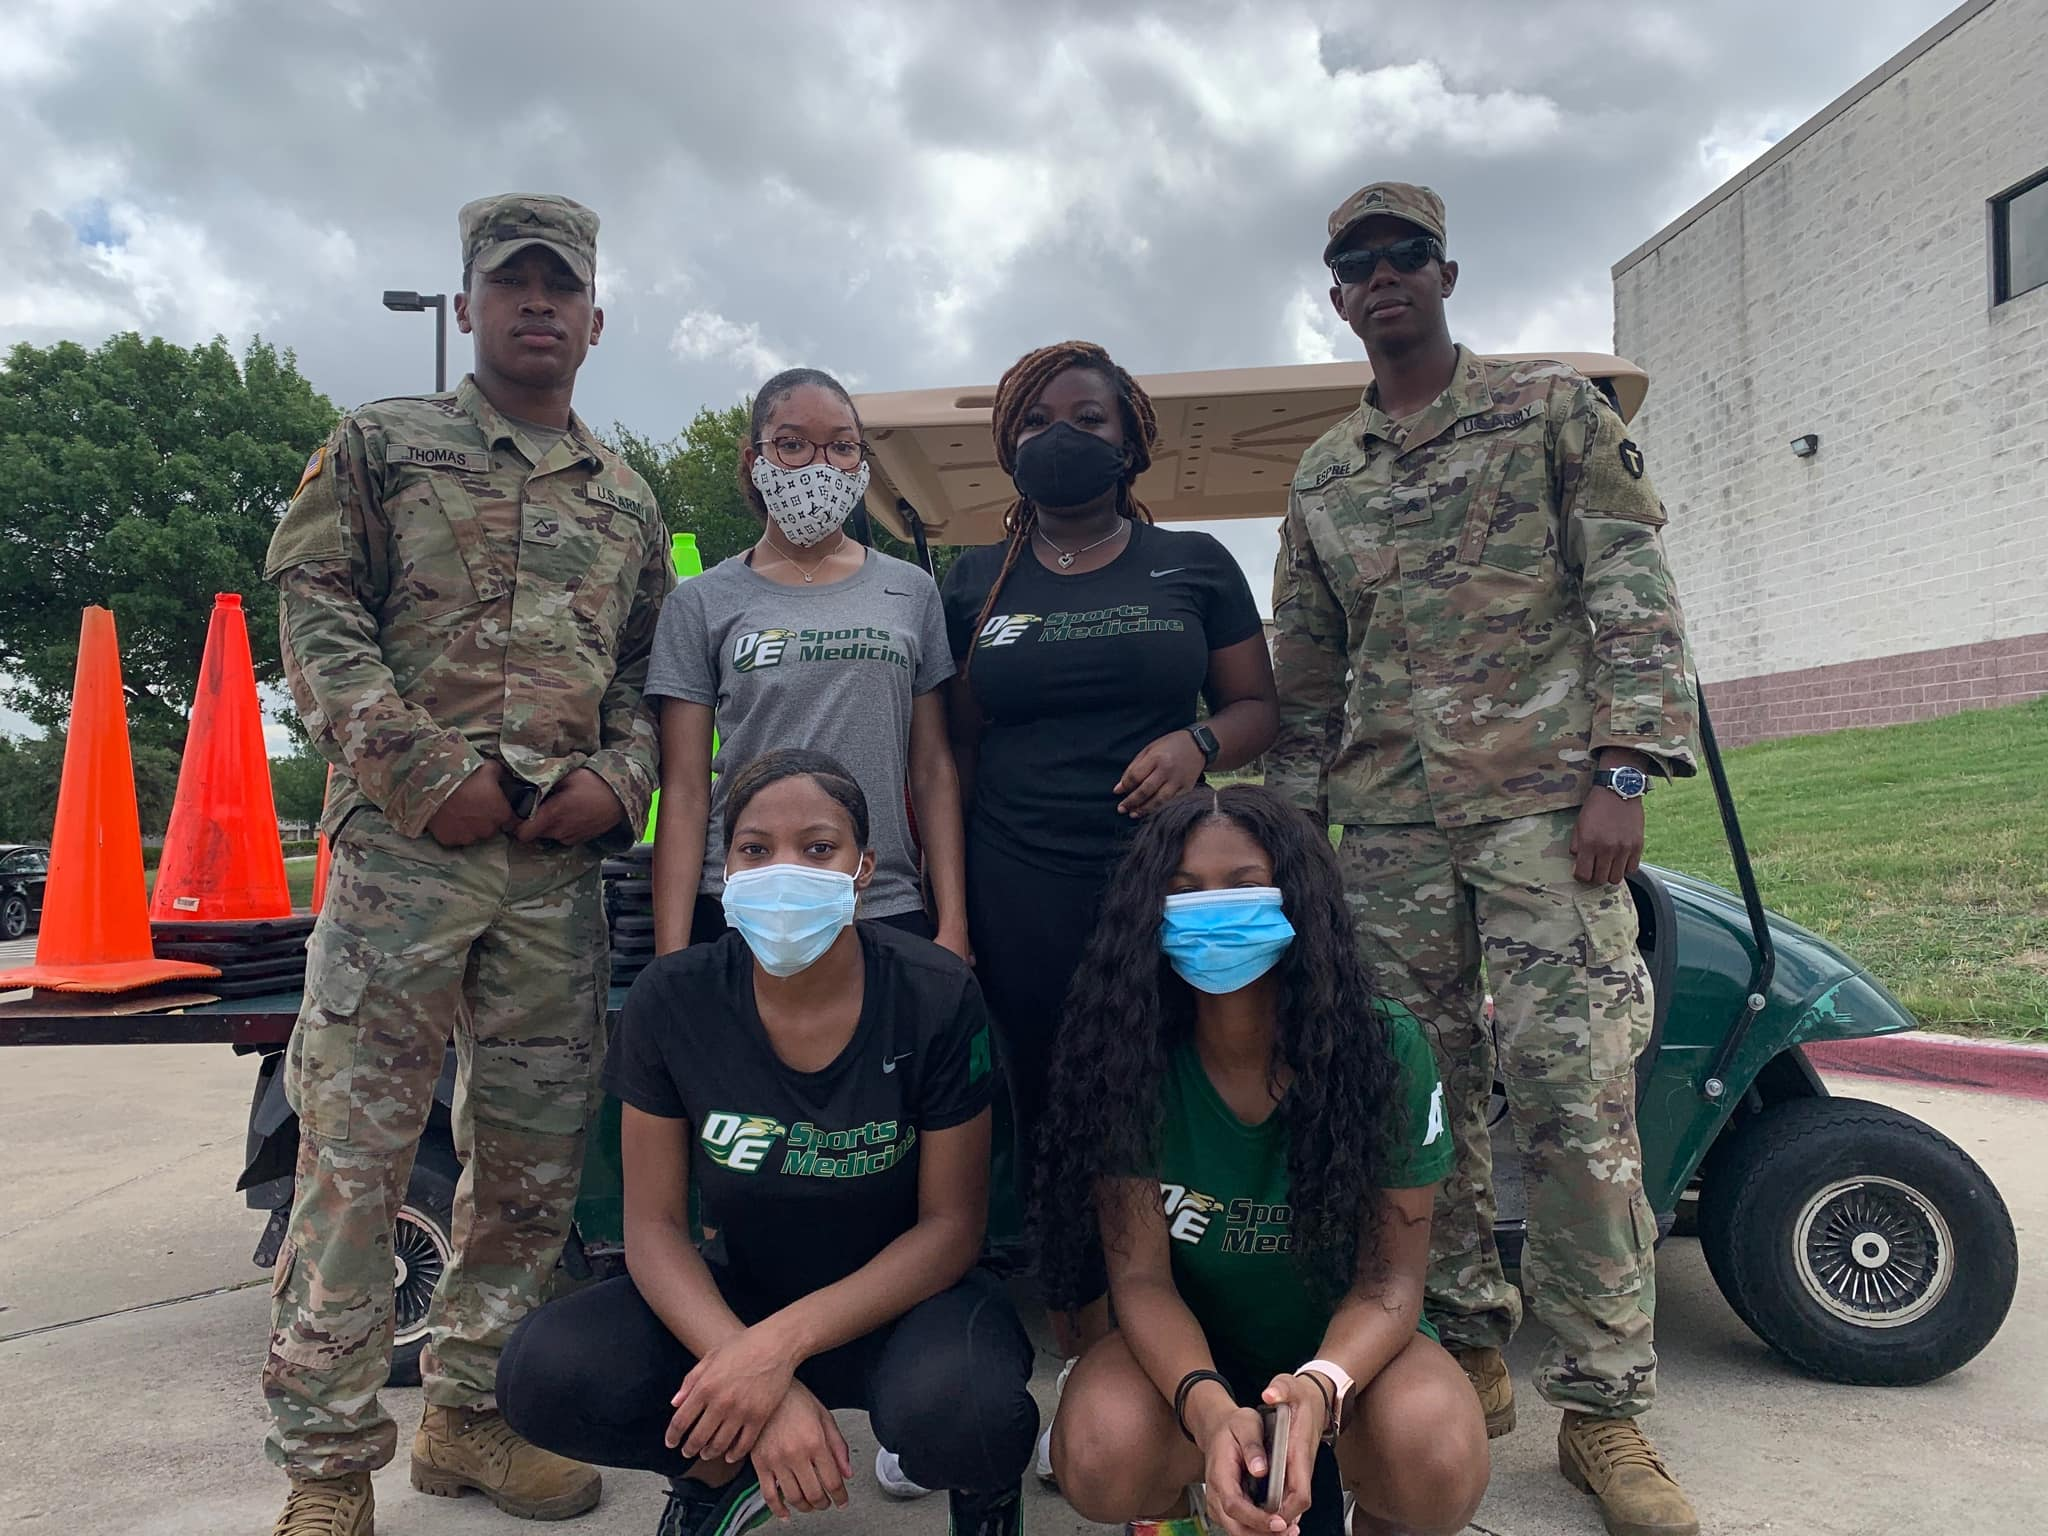 DeSoto students and National Guardsmen